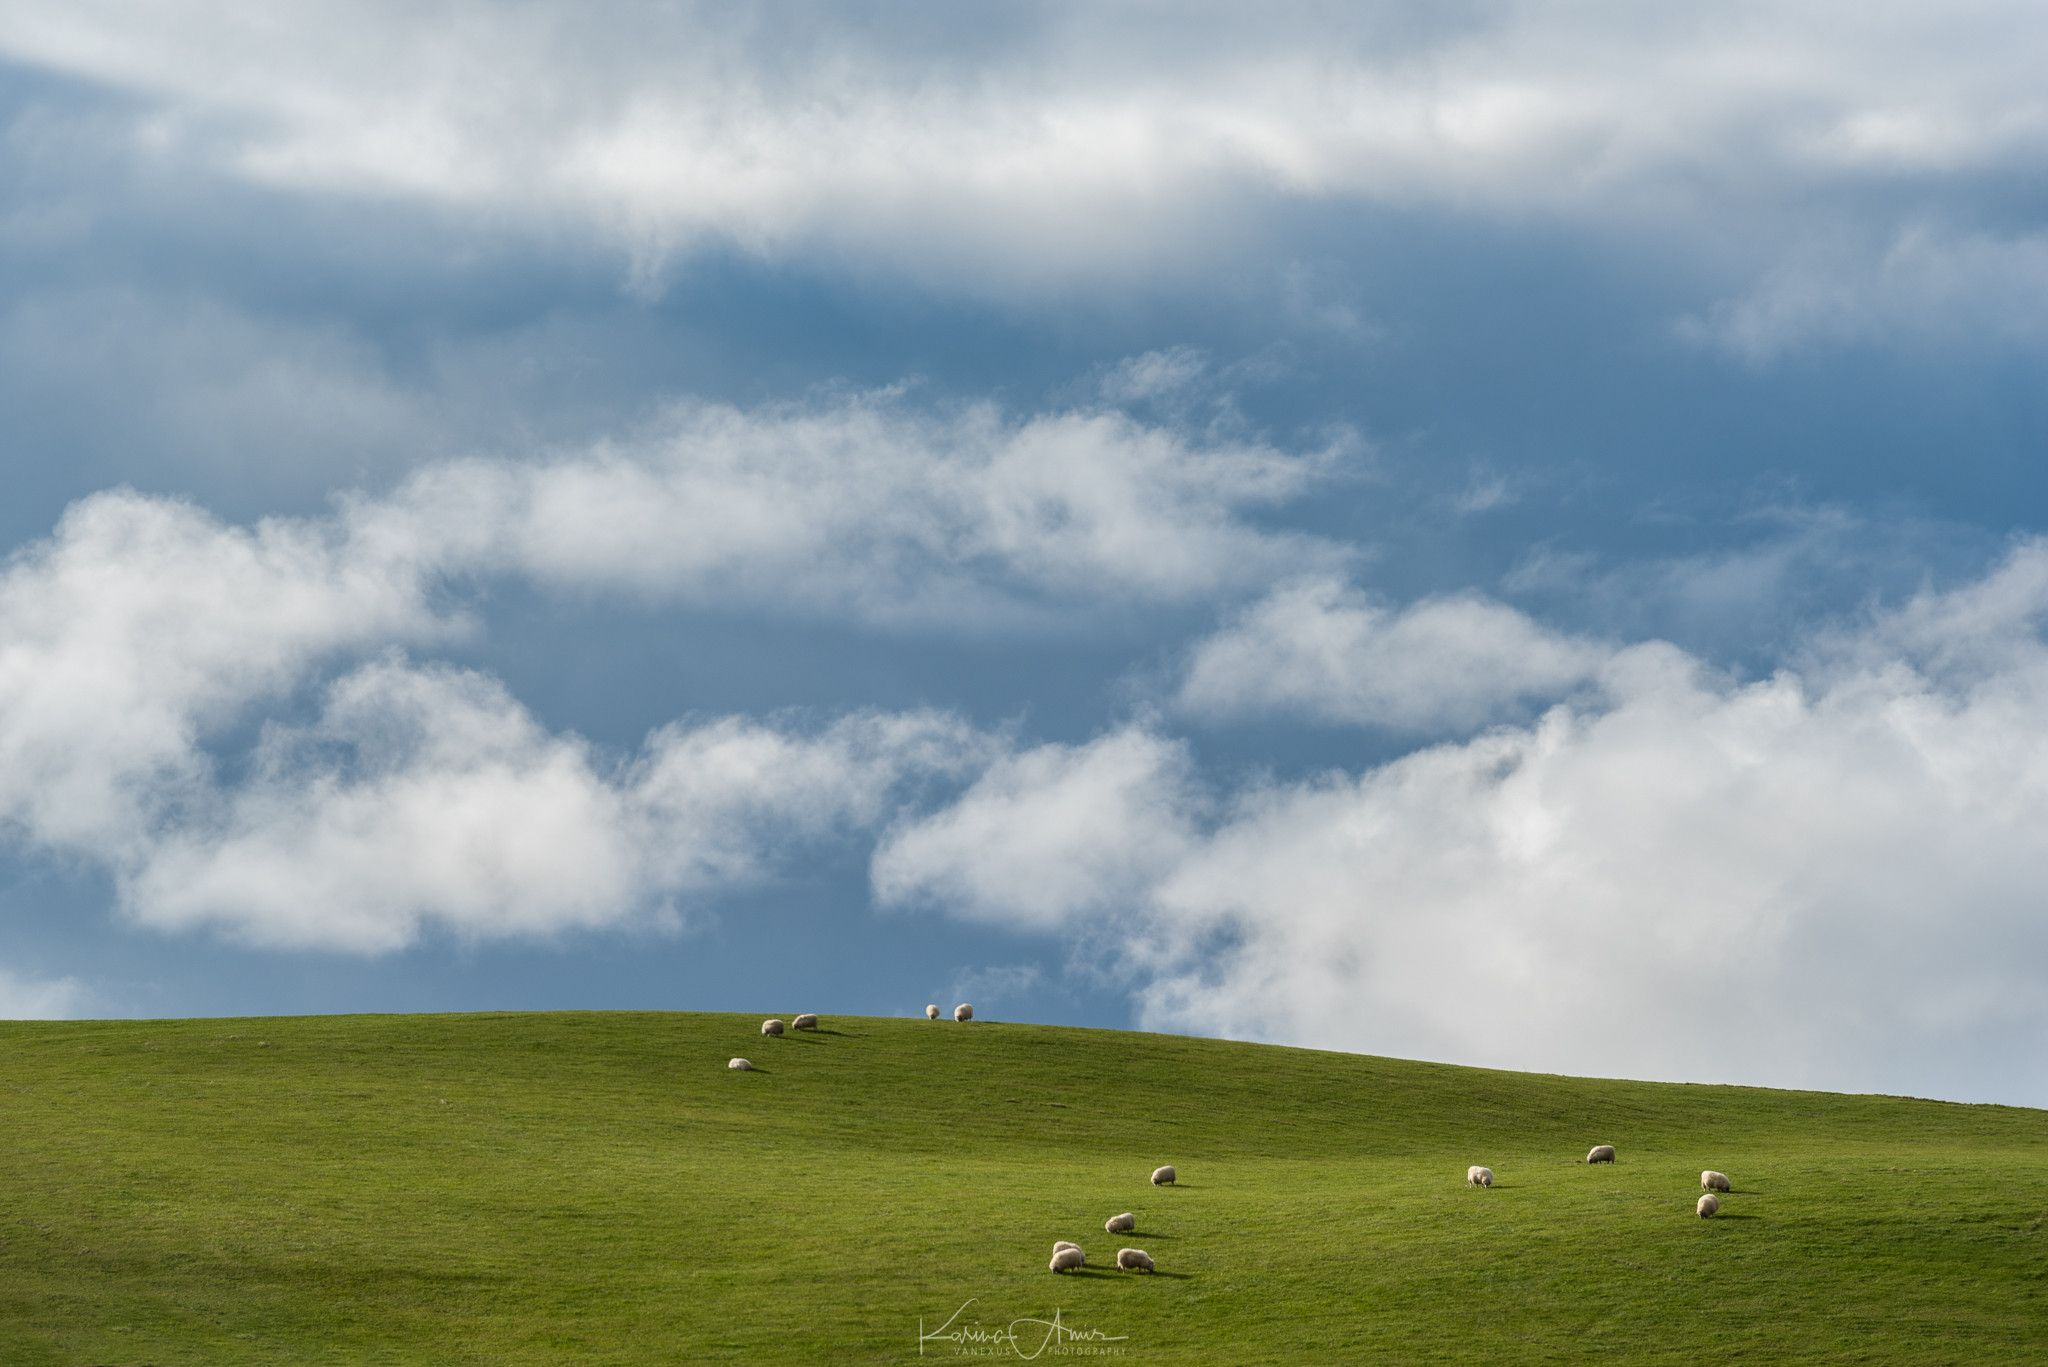 We Found The Icelandic Version Of Windows XP Wallpaper OC6016x4016